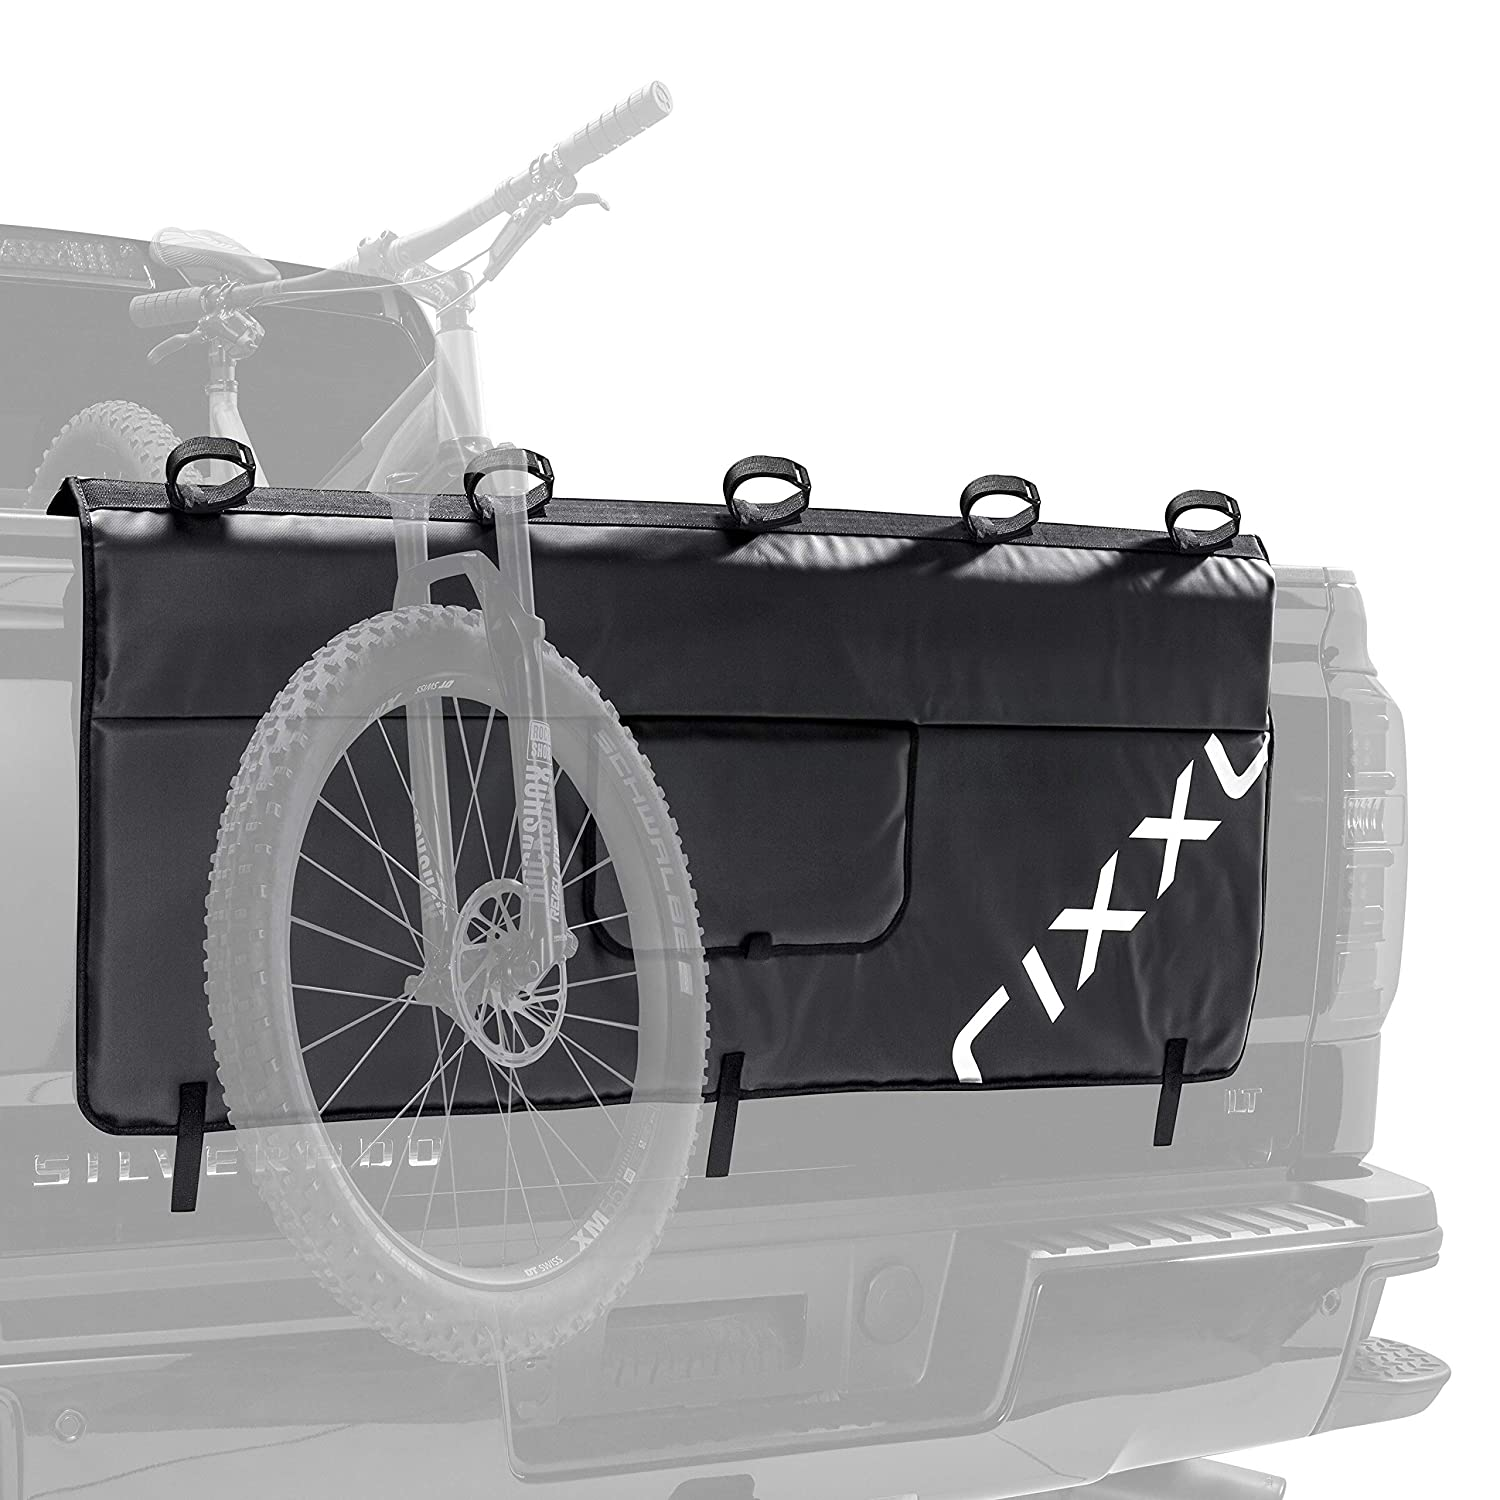 Tailgate Pad Cover for Bikes - 54' Weatherproof Secure Gatekeeper Bicycle Transport Pad with 5 Mounting Points for mid-size pickups - Black Rixxu